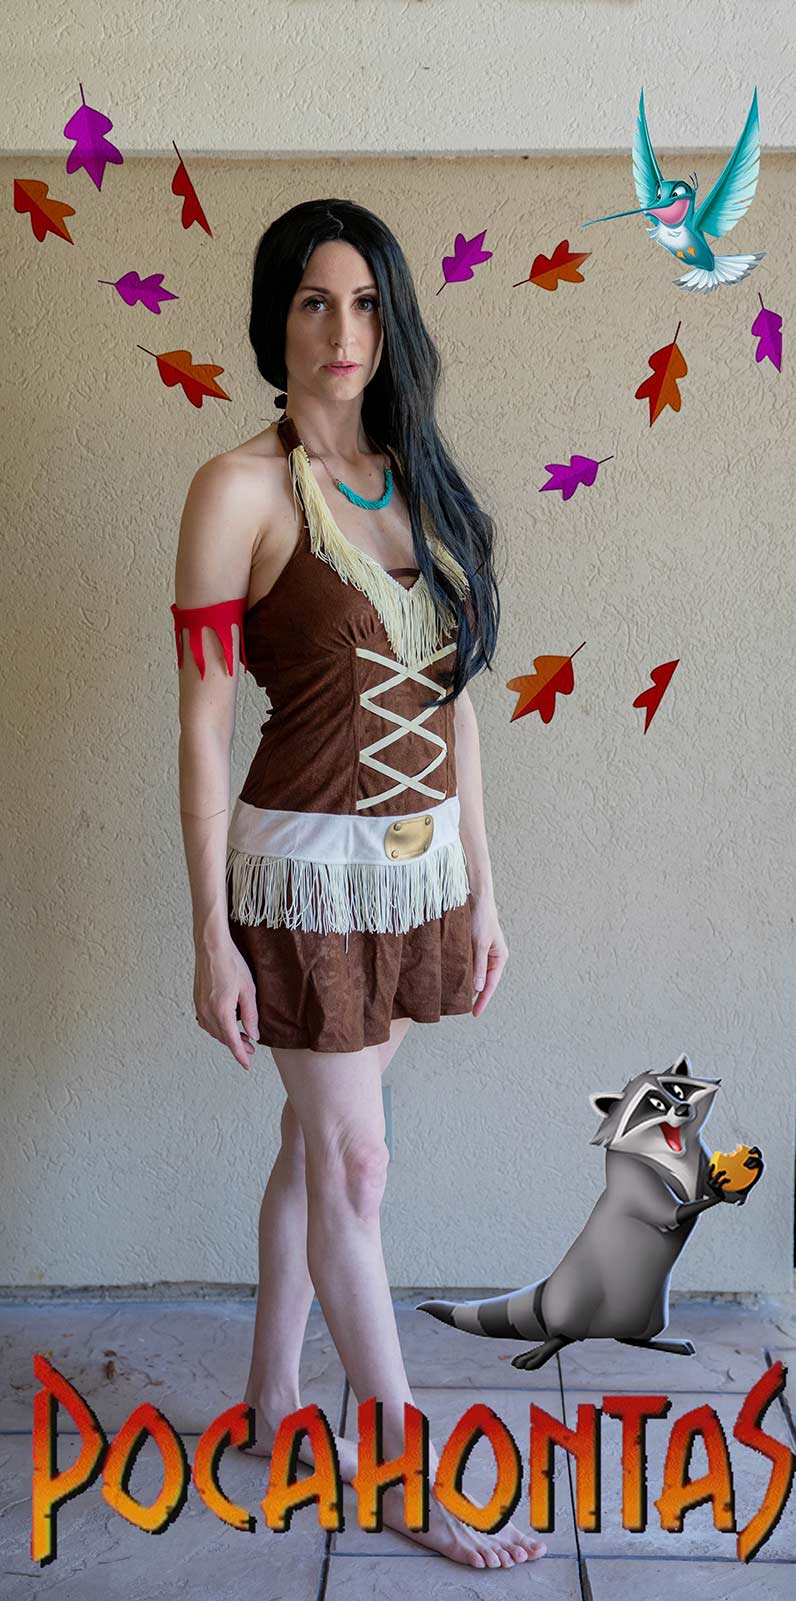 Pocahontas disney princess